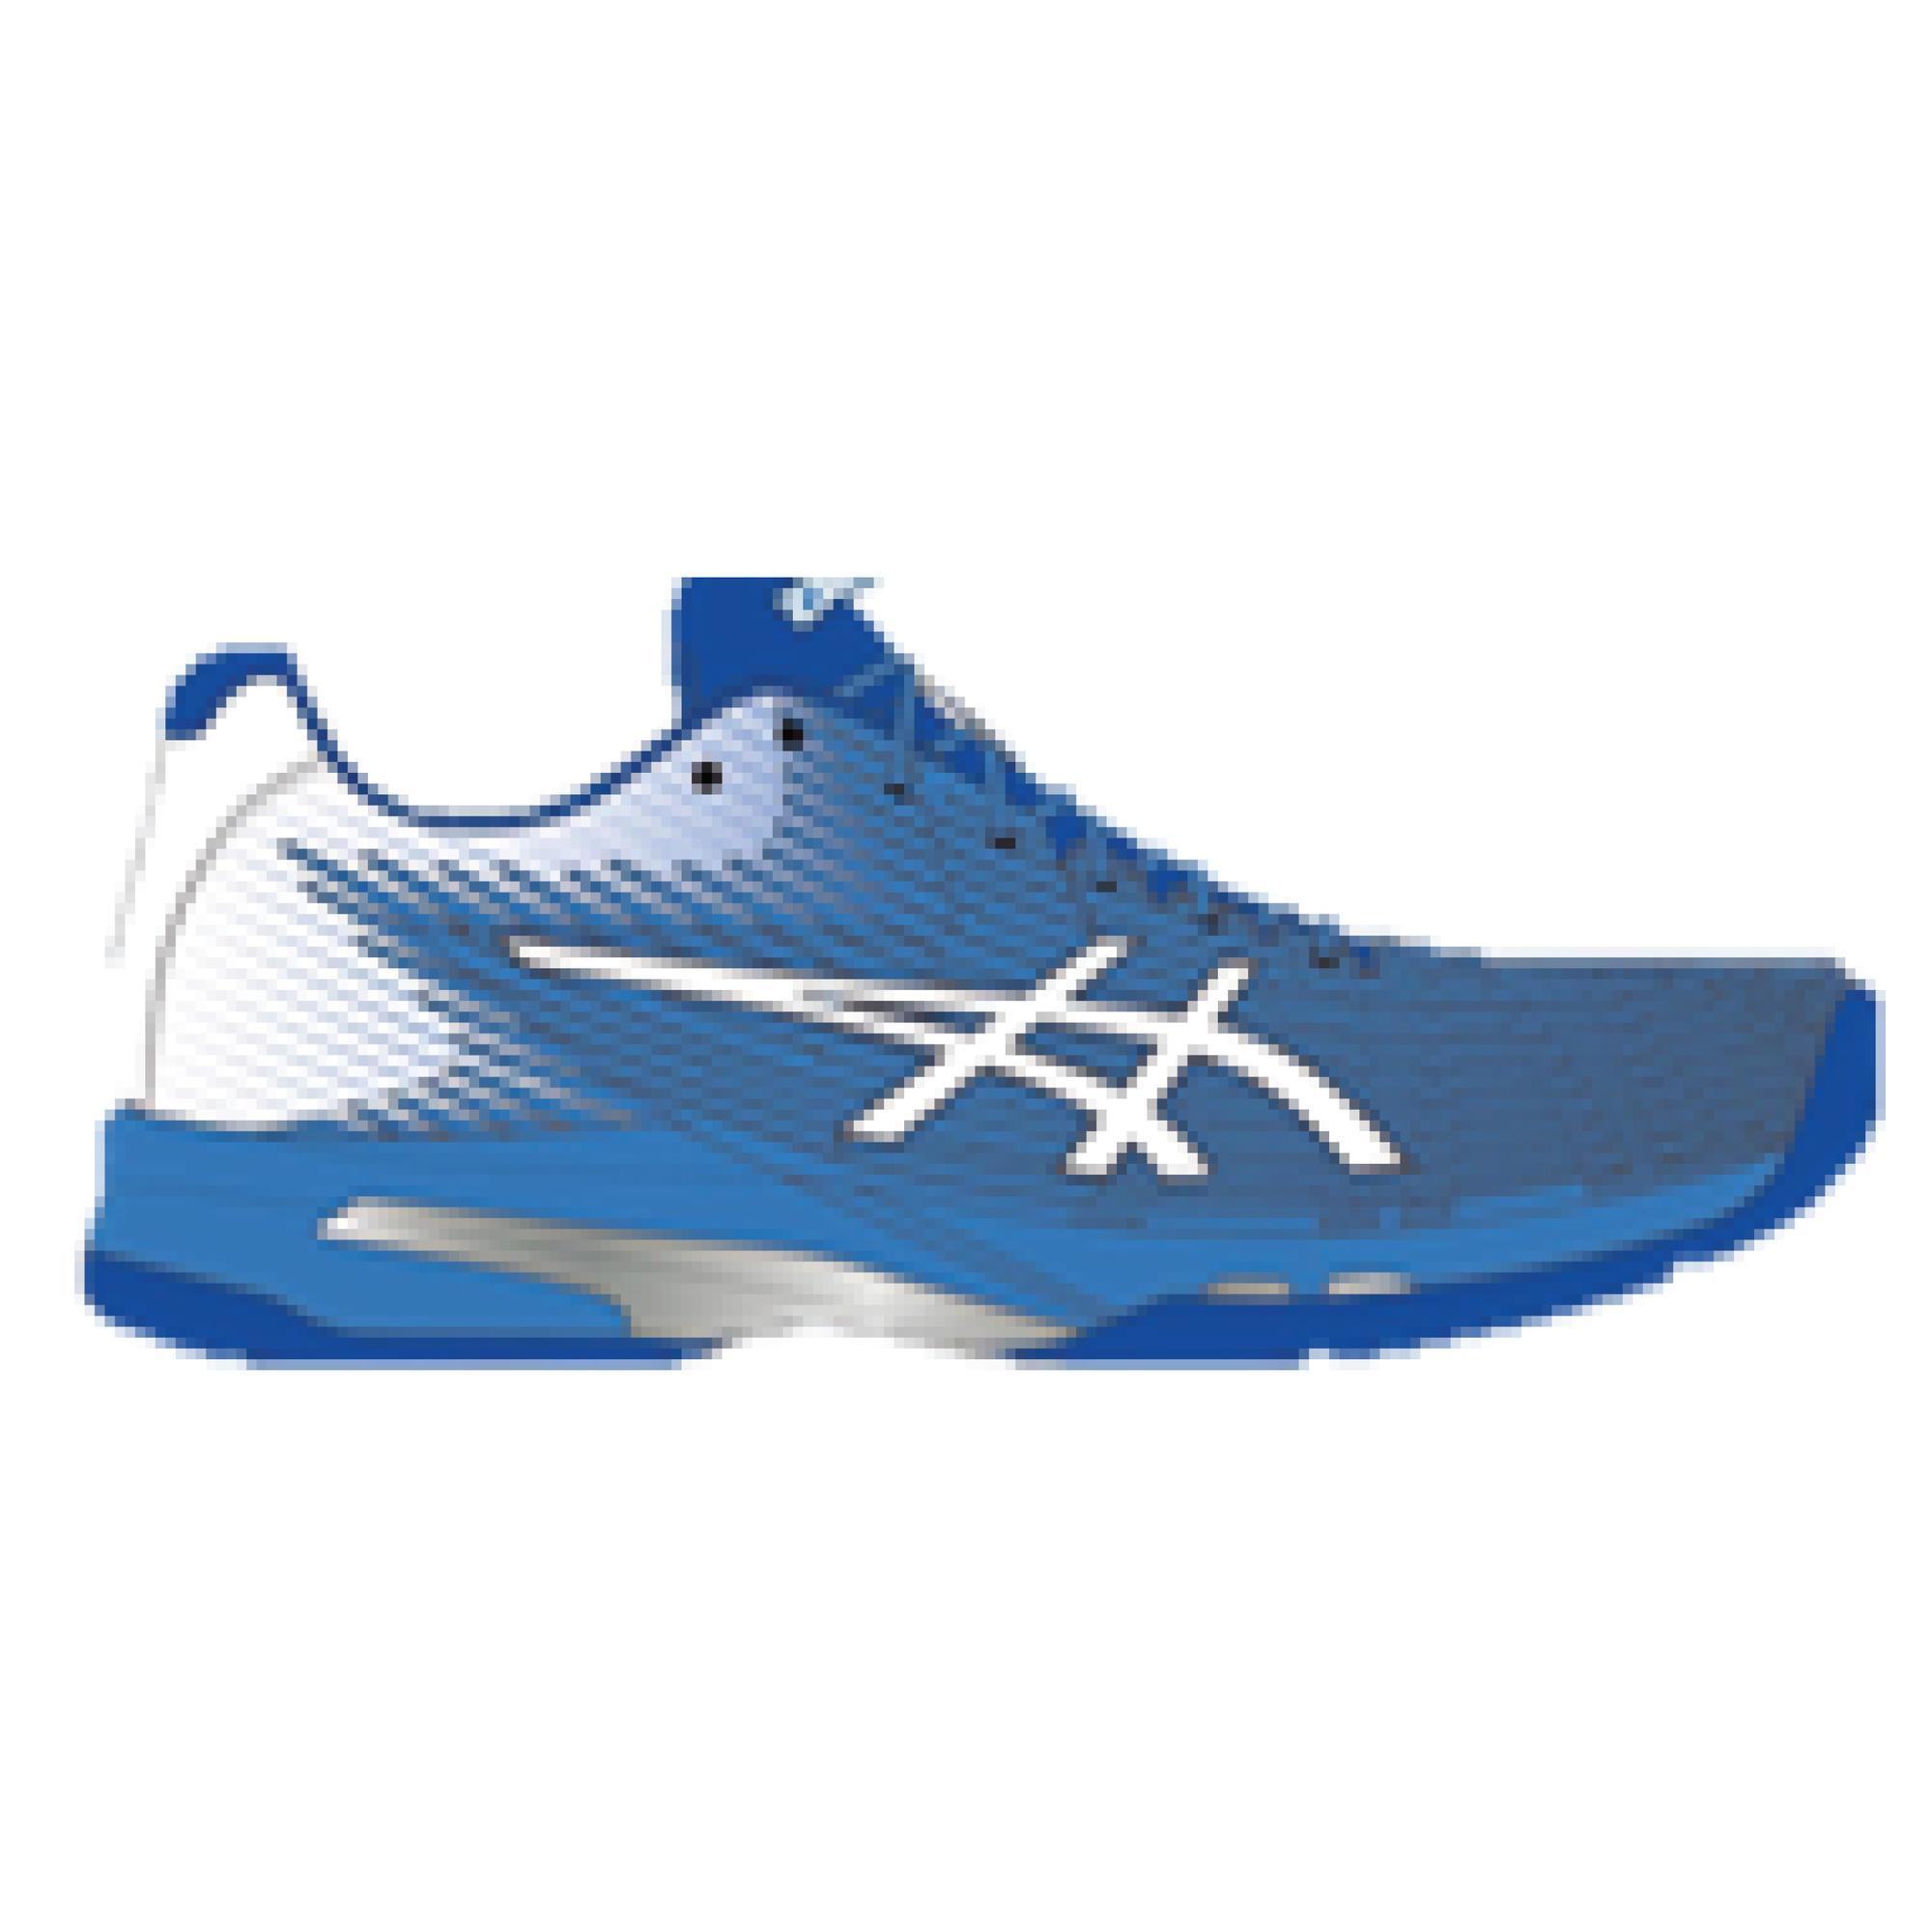 Asics Tennisschoenen voor dames Gel Solution Speed Flash blauw